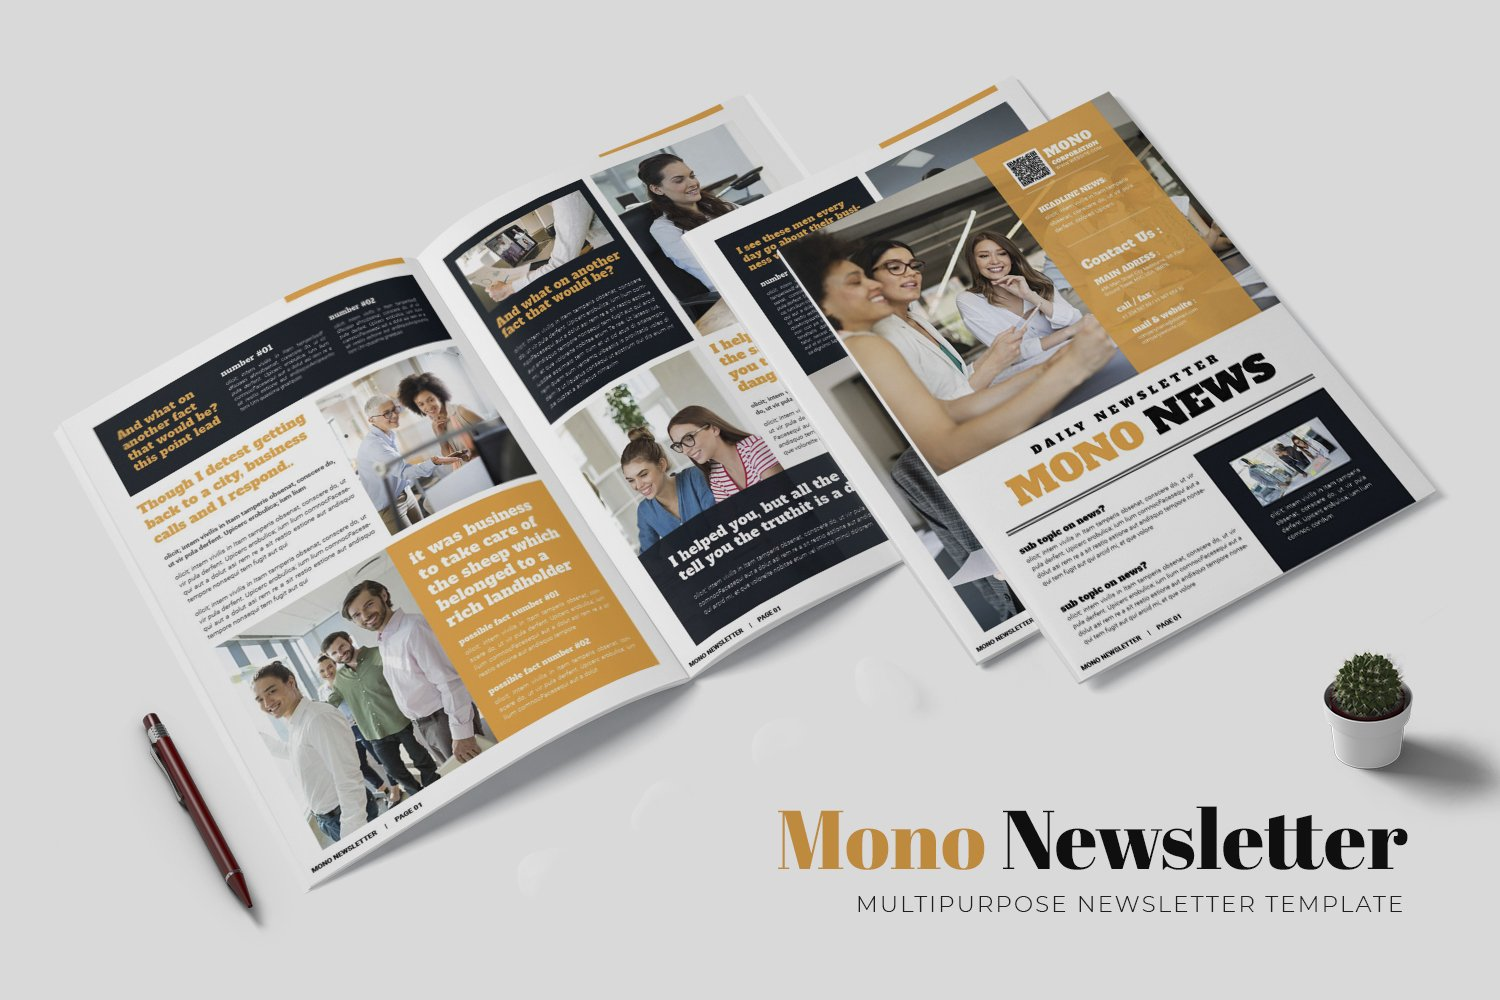 Mono Newsletter Template example image 1